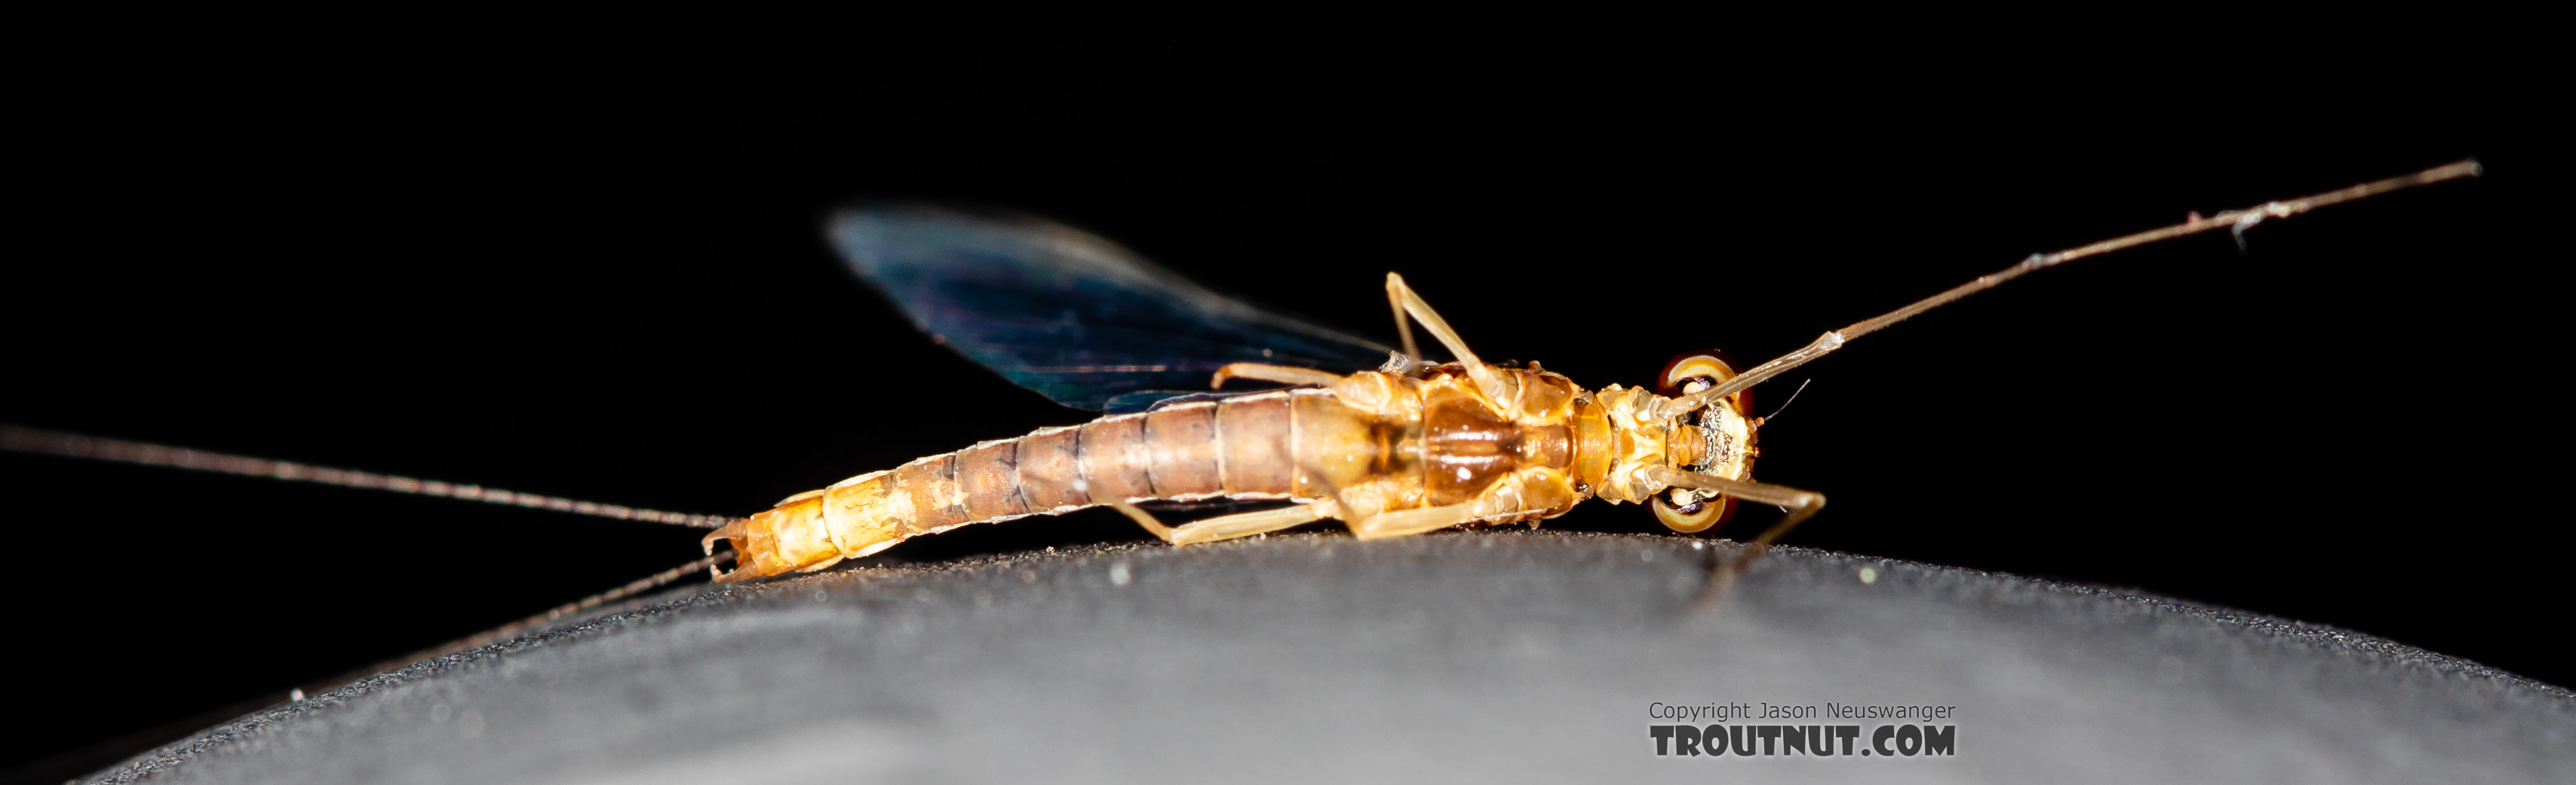 Male Ephemerella dorothea infrequens (Pale Morning Dun) Mayfly Spinner from the Madison River in Montana